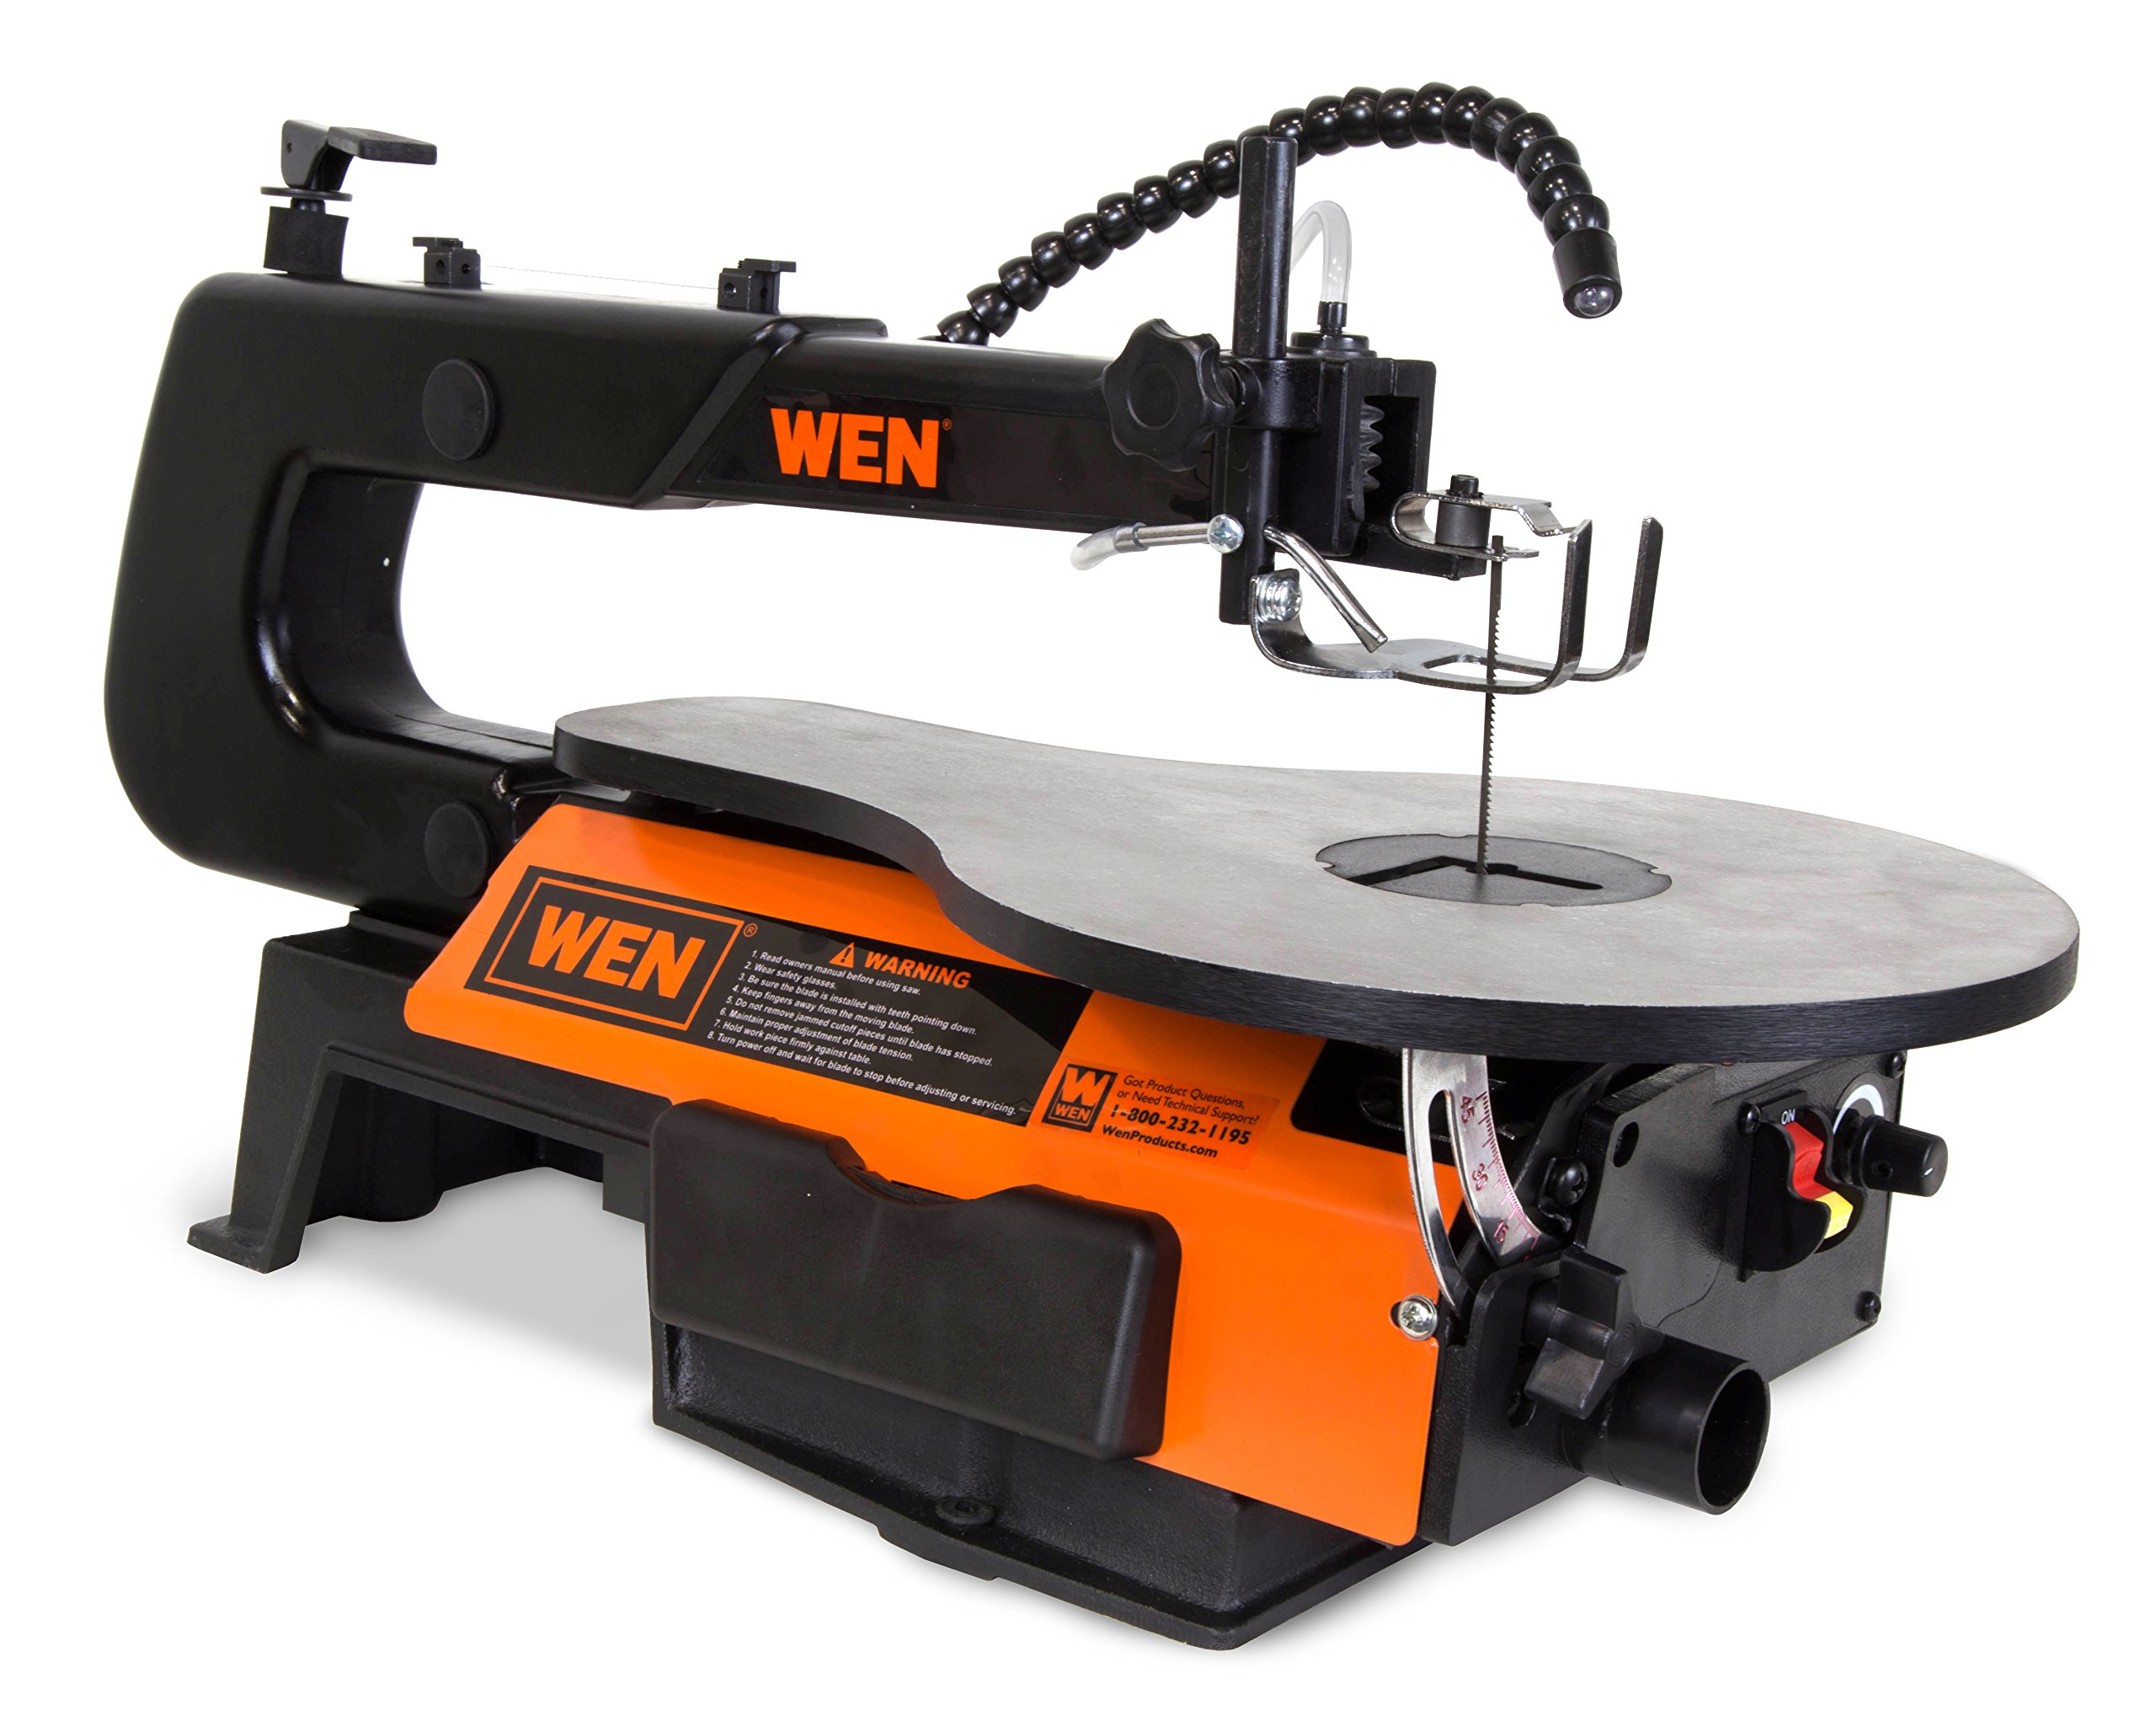 WEN 3921 16-inch Two-Direction Variable Speed Scroll Saw by WEN